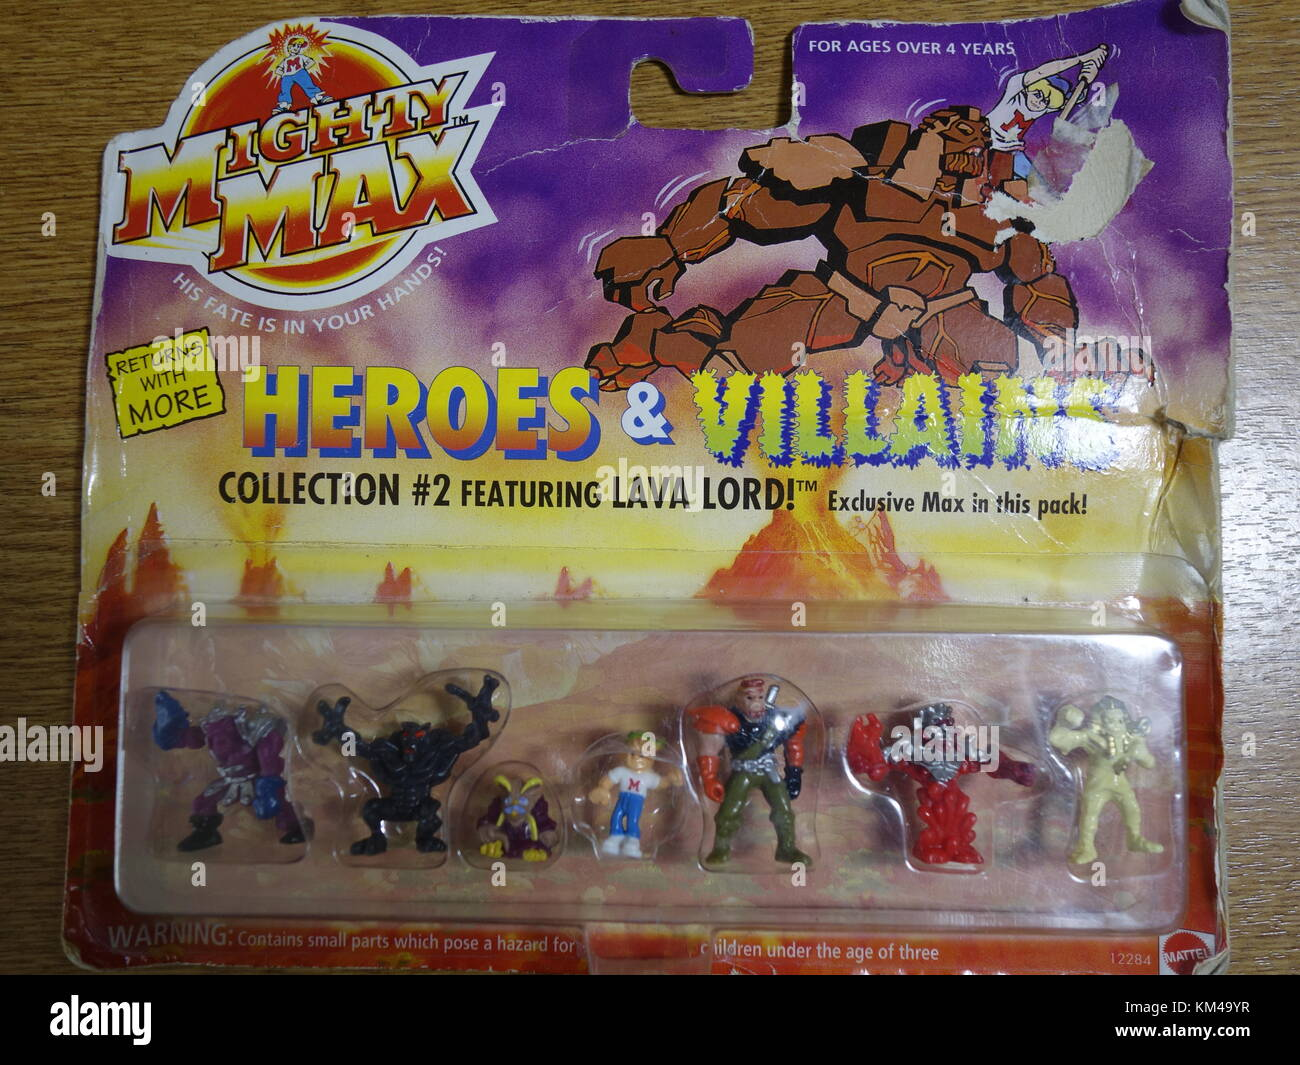 Mighty Max heroes and villains vintage figure pack by bluebird - Stock Image